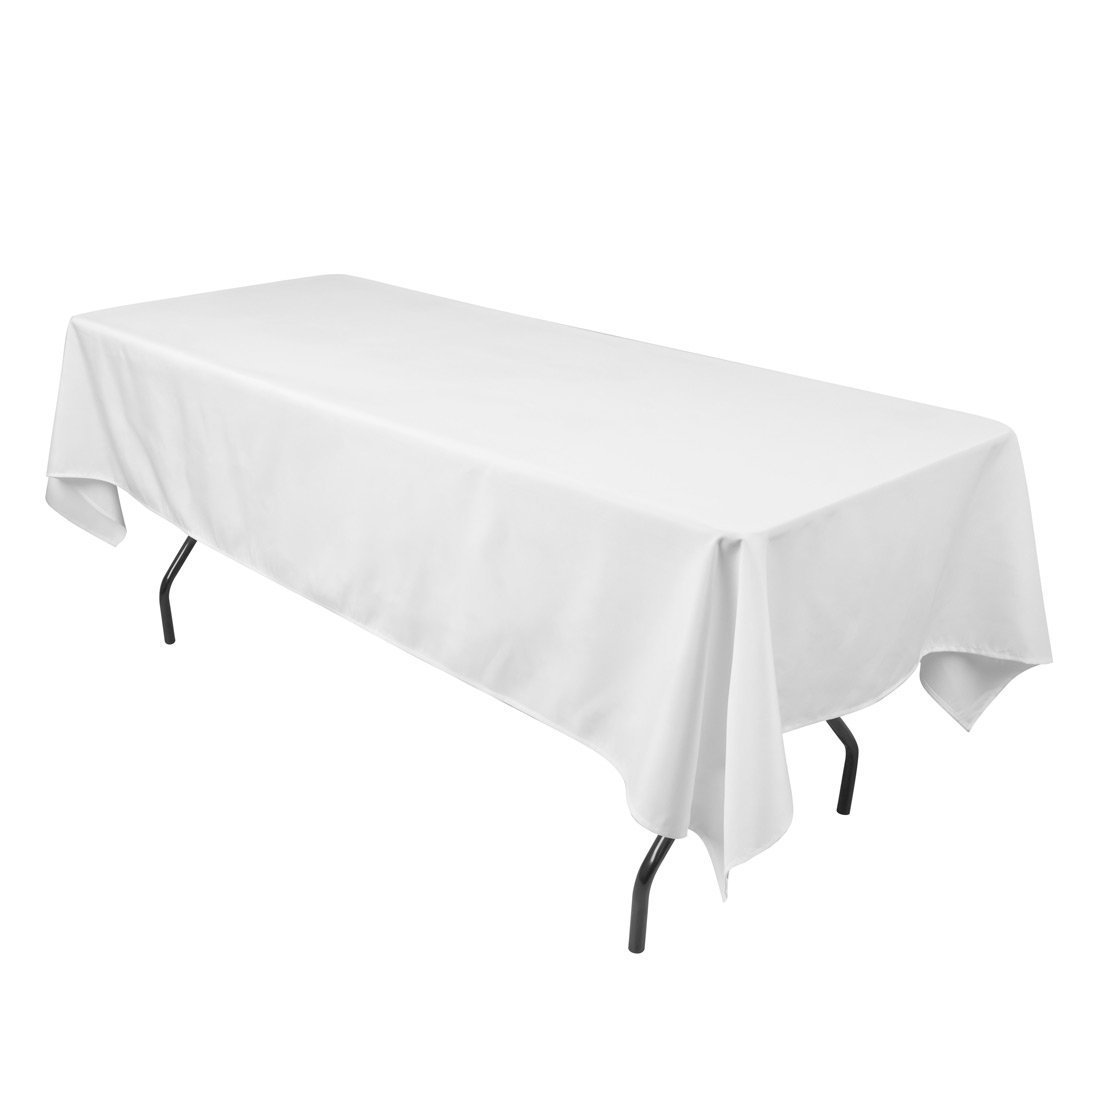 "Craft and Party - 10 pcs Rectangular Tablecloth for Home, Party, Wedding or Restaurant Use (60"" X 102"", White)"